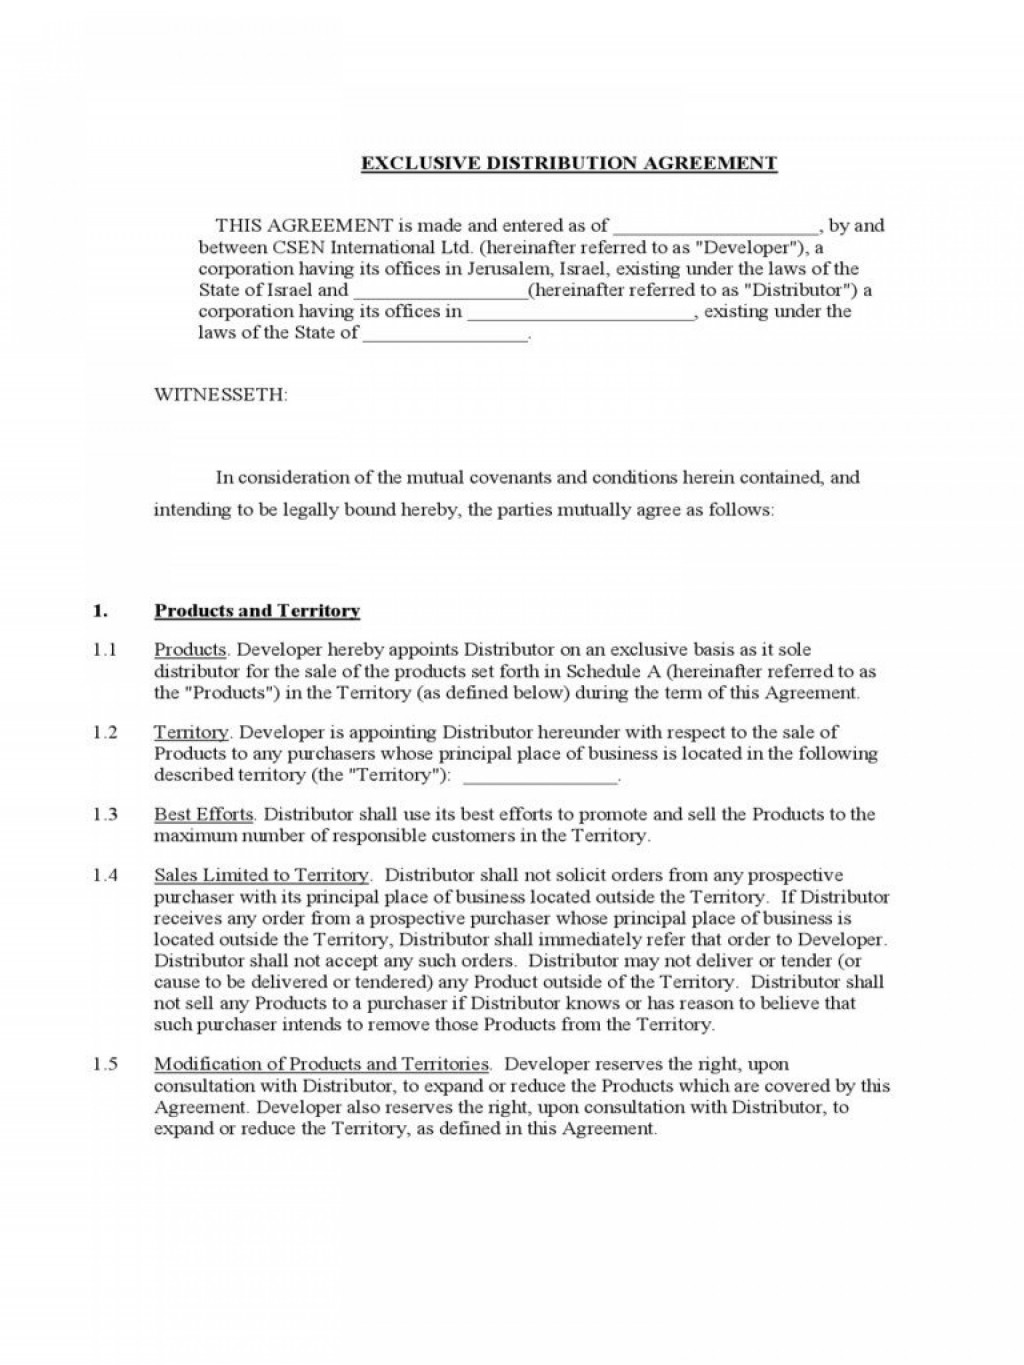 001 Staggering Distribution Agreement Template Word High Definition  Distributor Exclusive ContractLarge